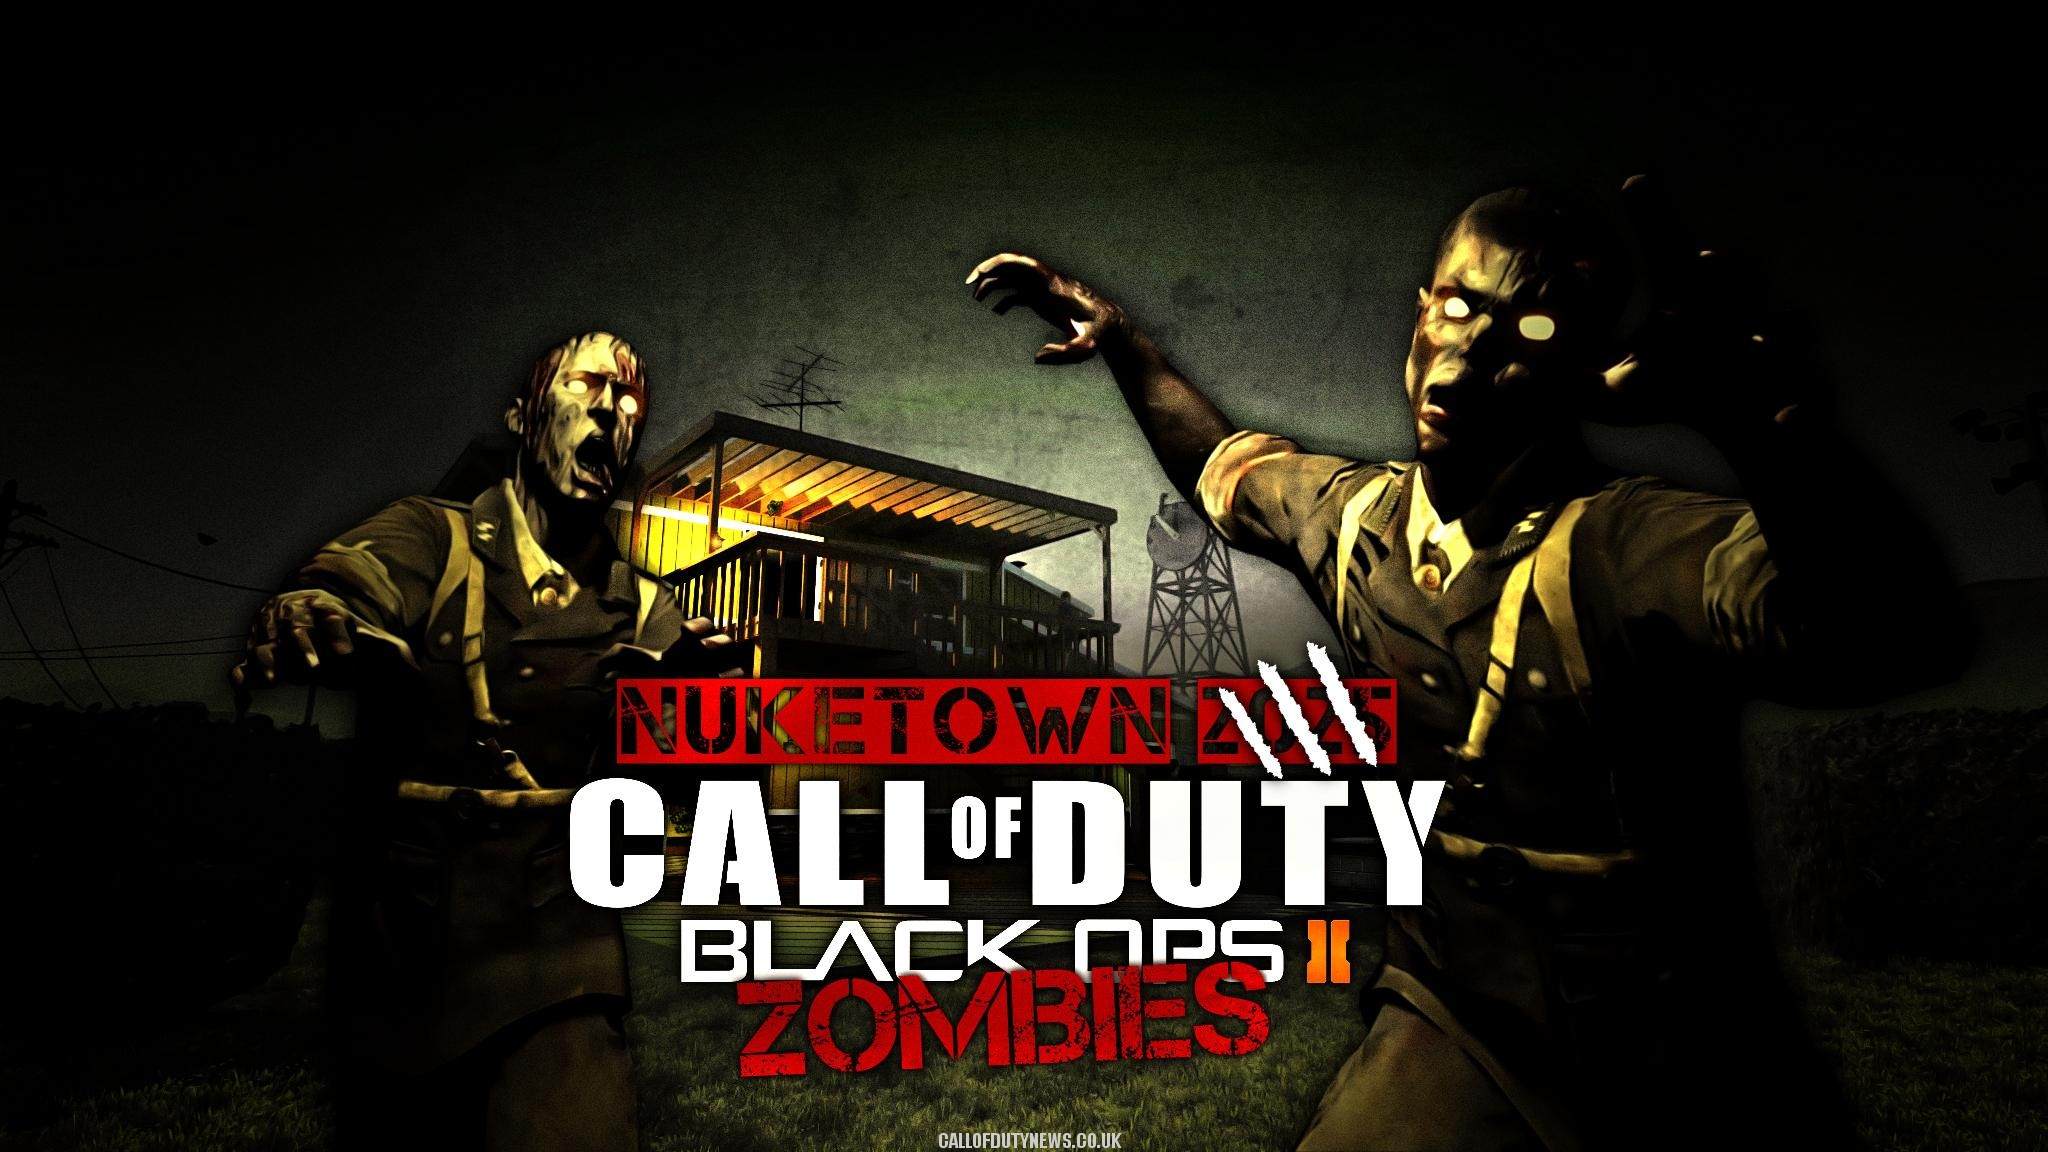 Call of Duty Black Ops 2 Zombie Exclusive HD Wallpapers 944 2048x1152